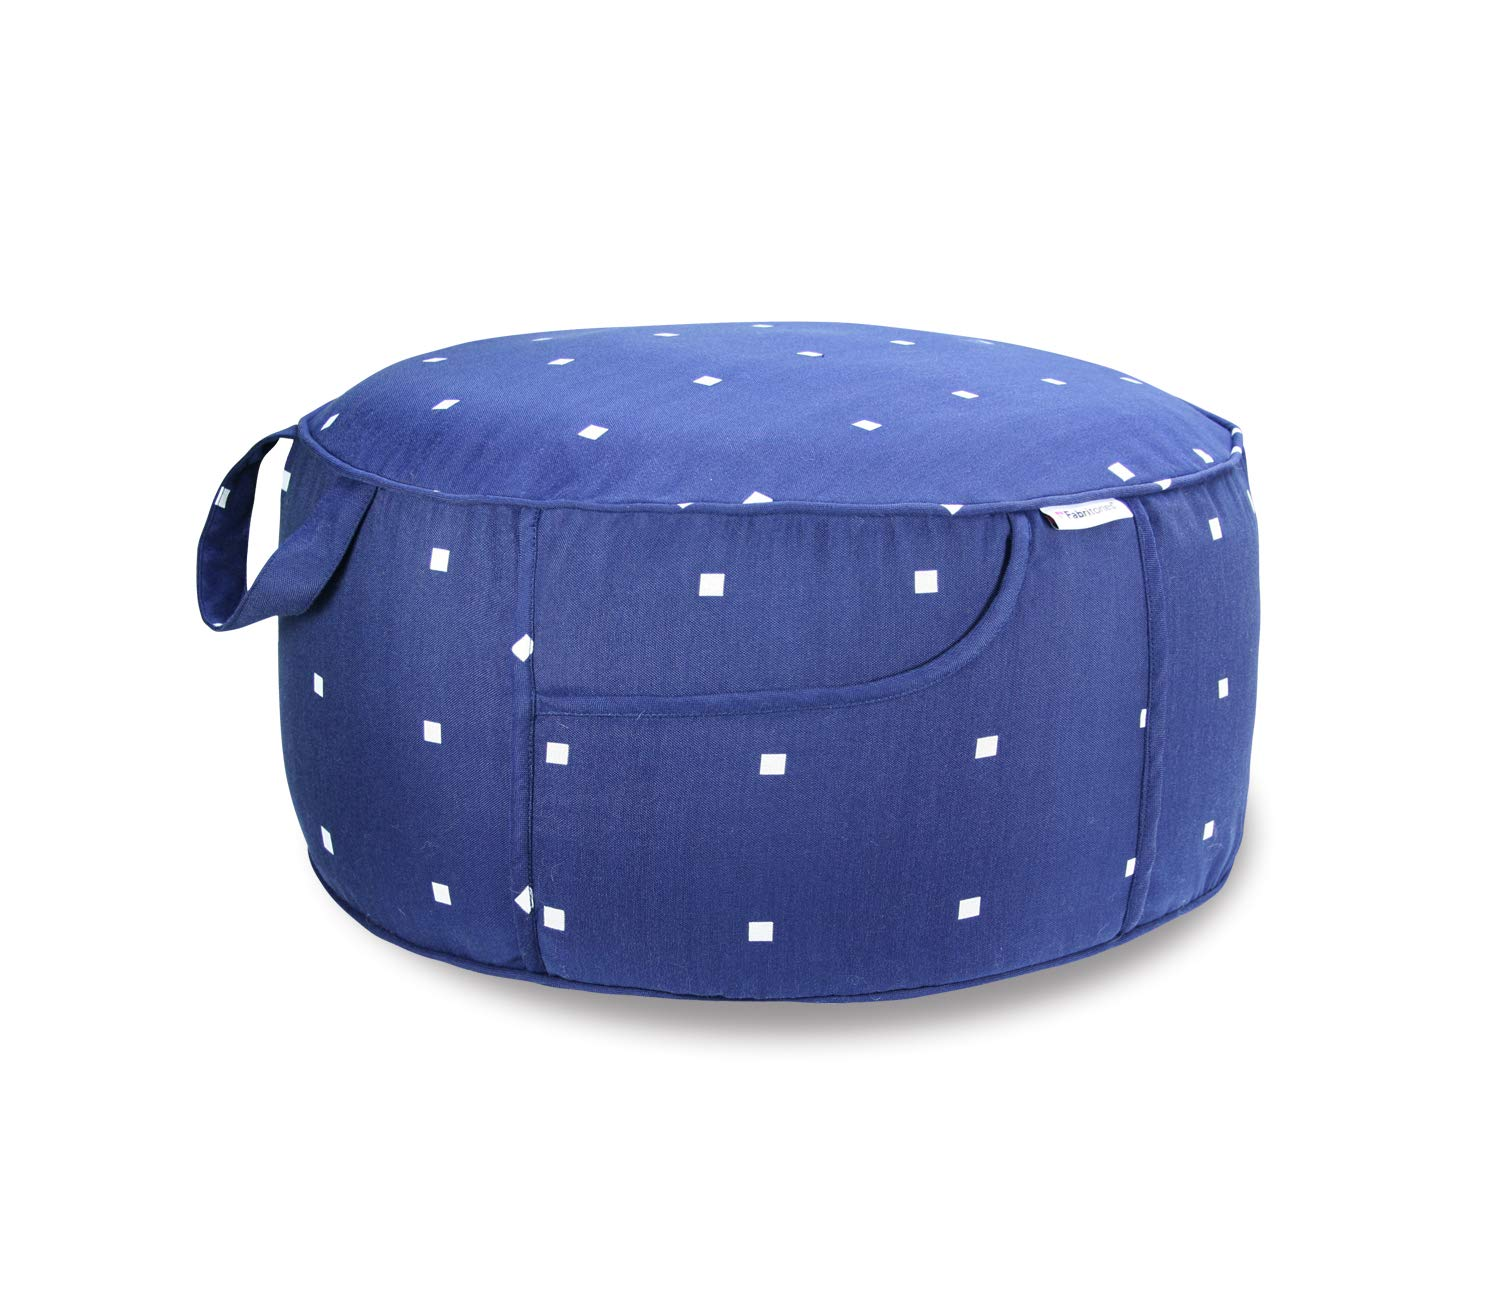 Fabritones Outdoor Inflatable Stool Round Ottoman Navy Polka Dot Portable Foot Rest for Patio, Camping Home Yoga - Suitable for Kids and Adults